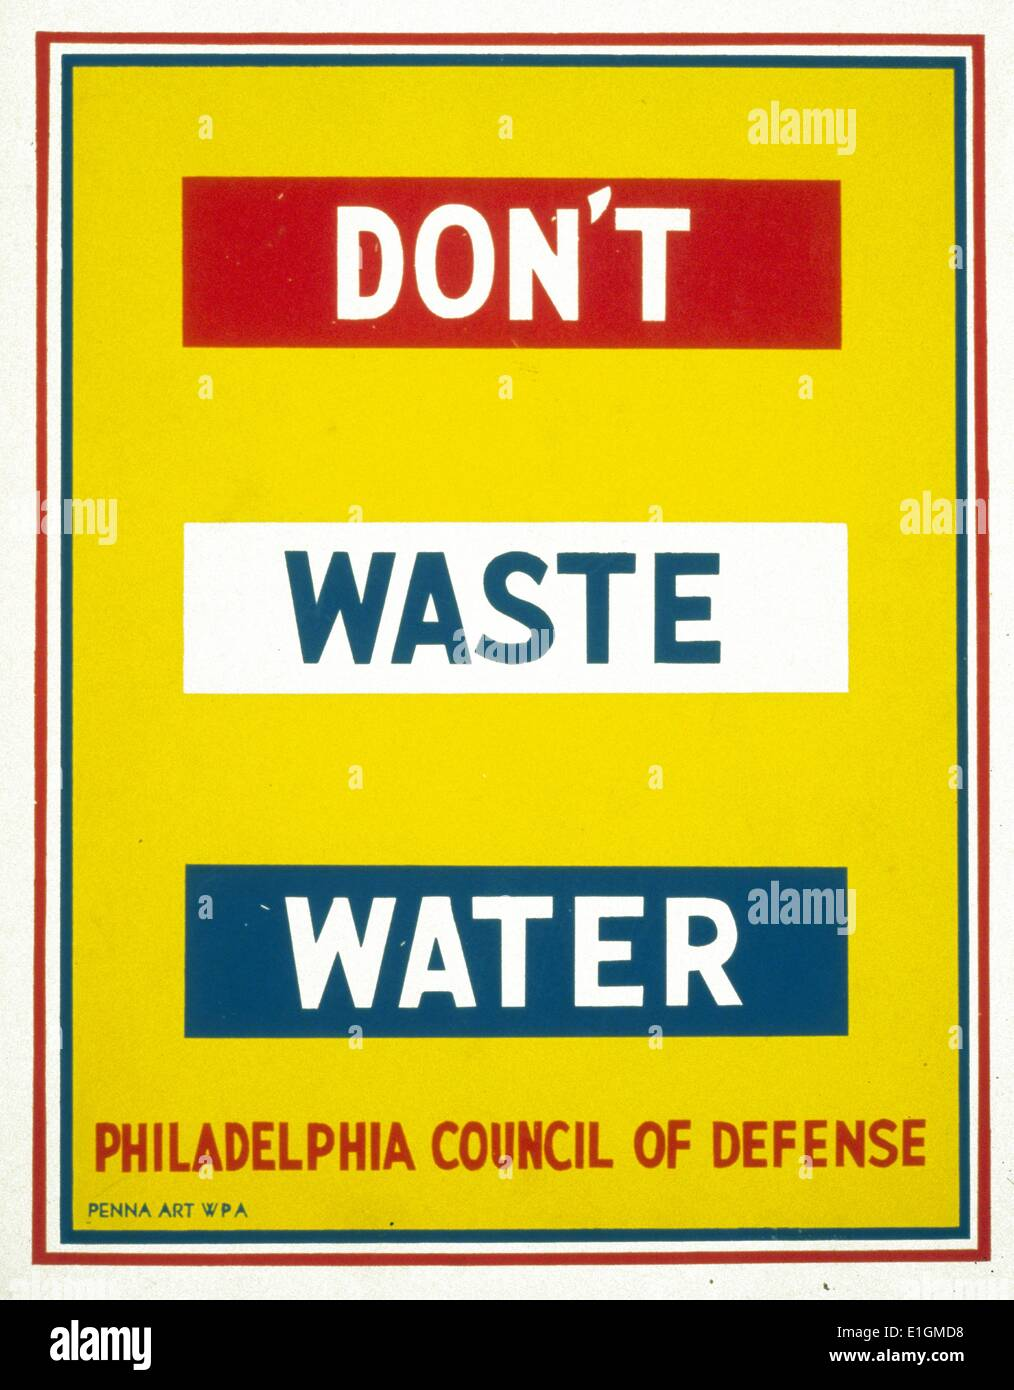 Don't waste water - Stock Image